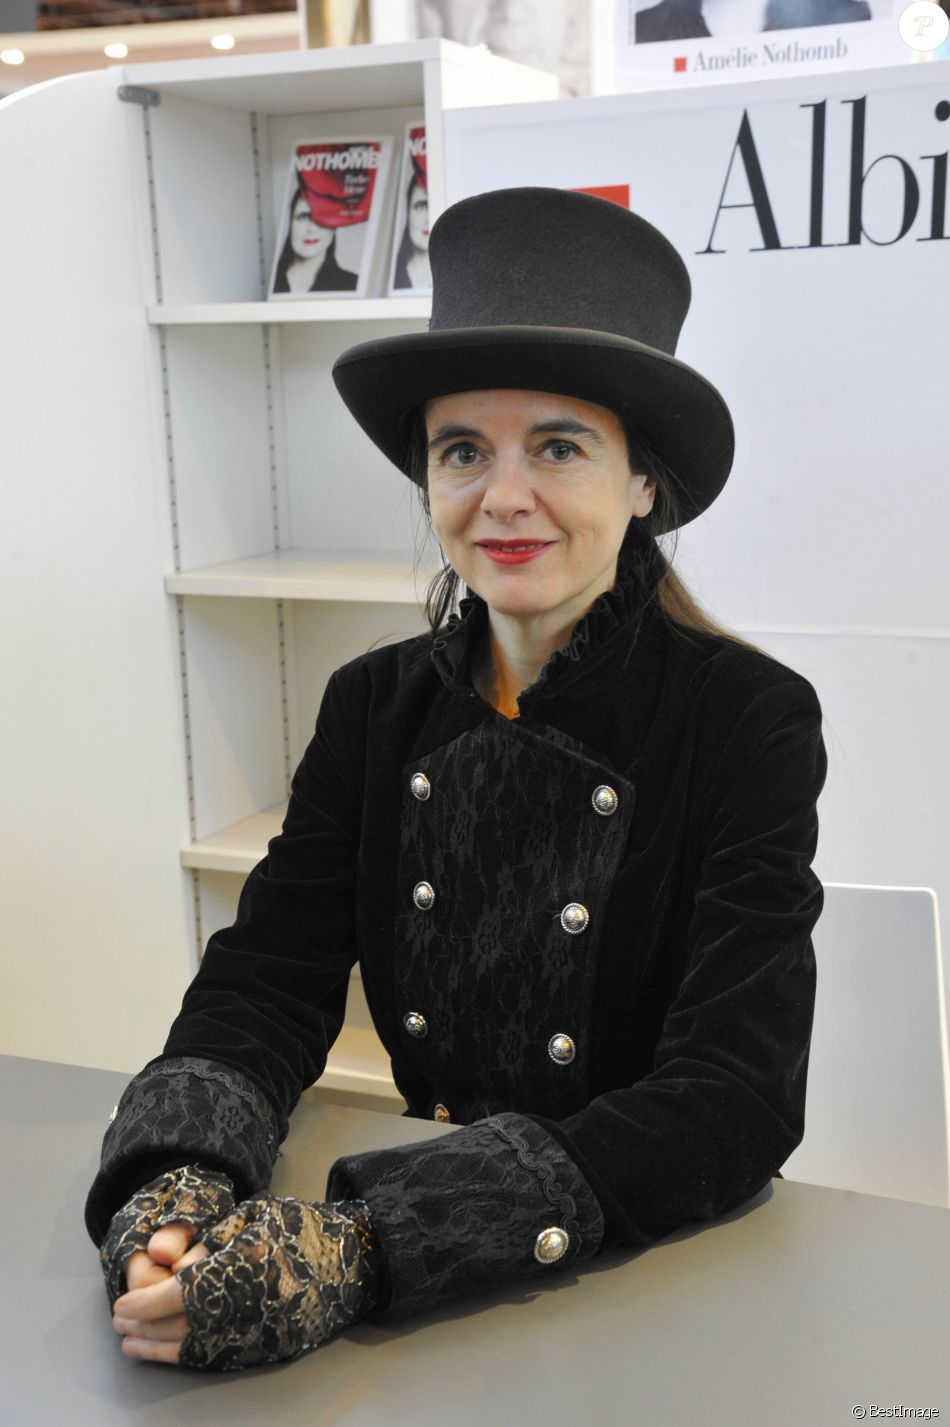 Amelie Nothomb techbizdesign hall of fame